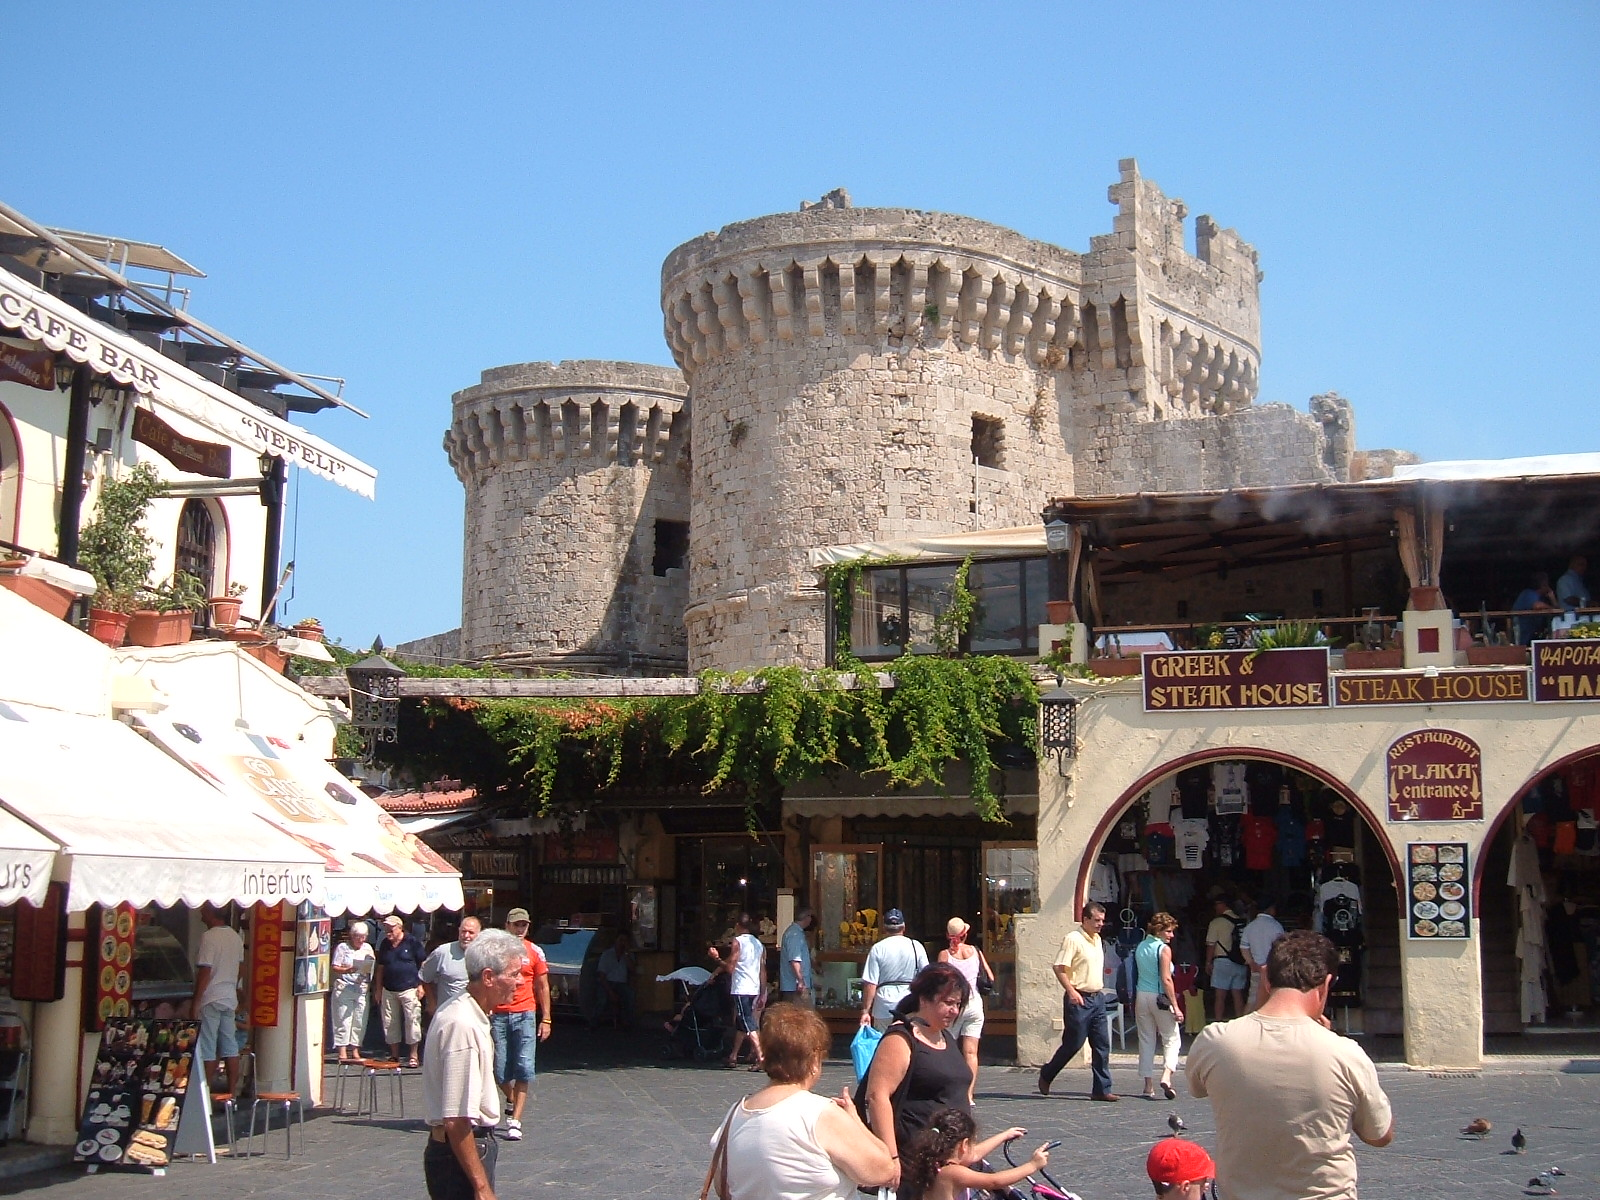 My Passion for Rhodes by Shulamit Sapir-Nevo - Ourboox.com